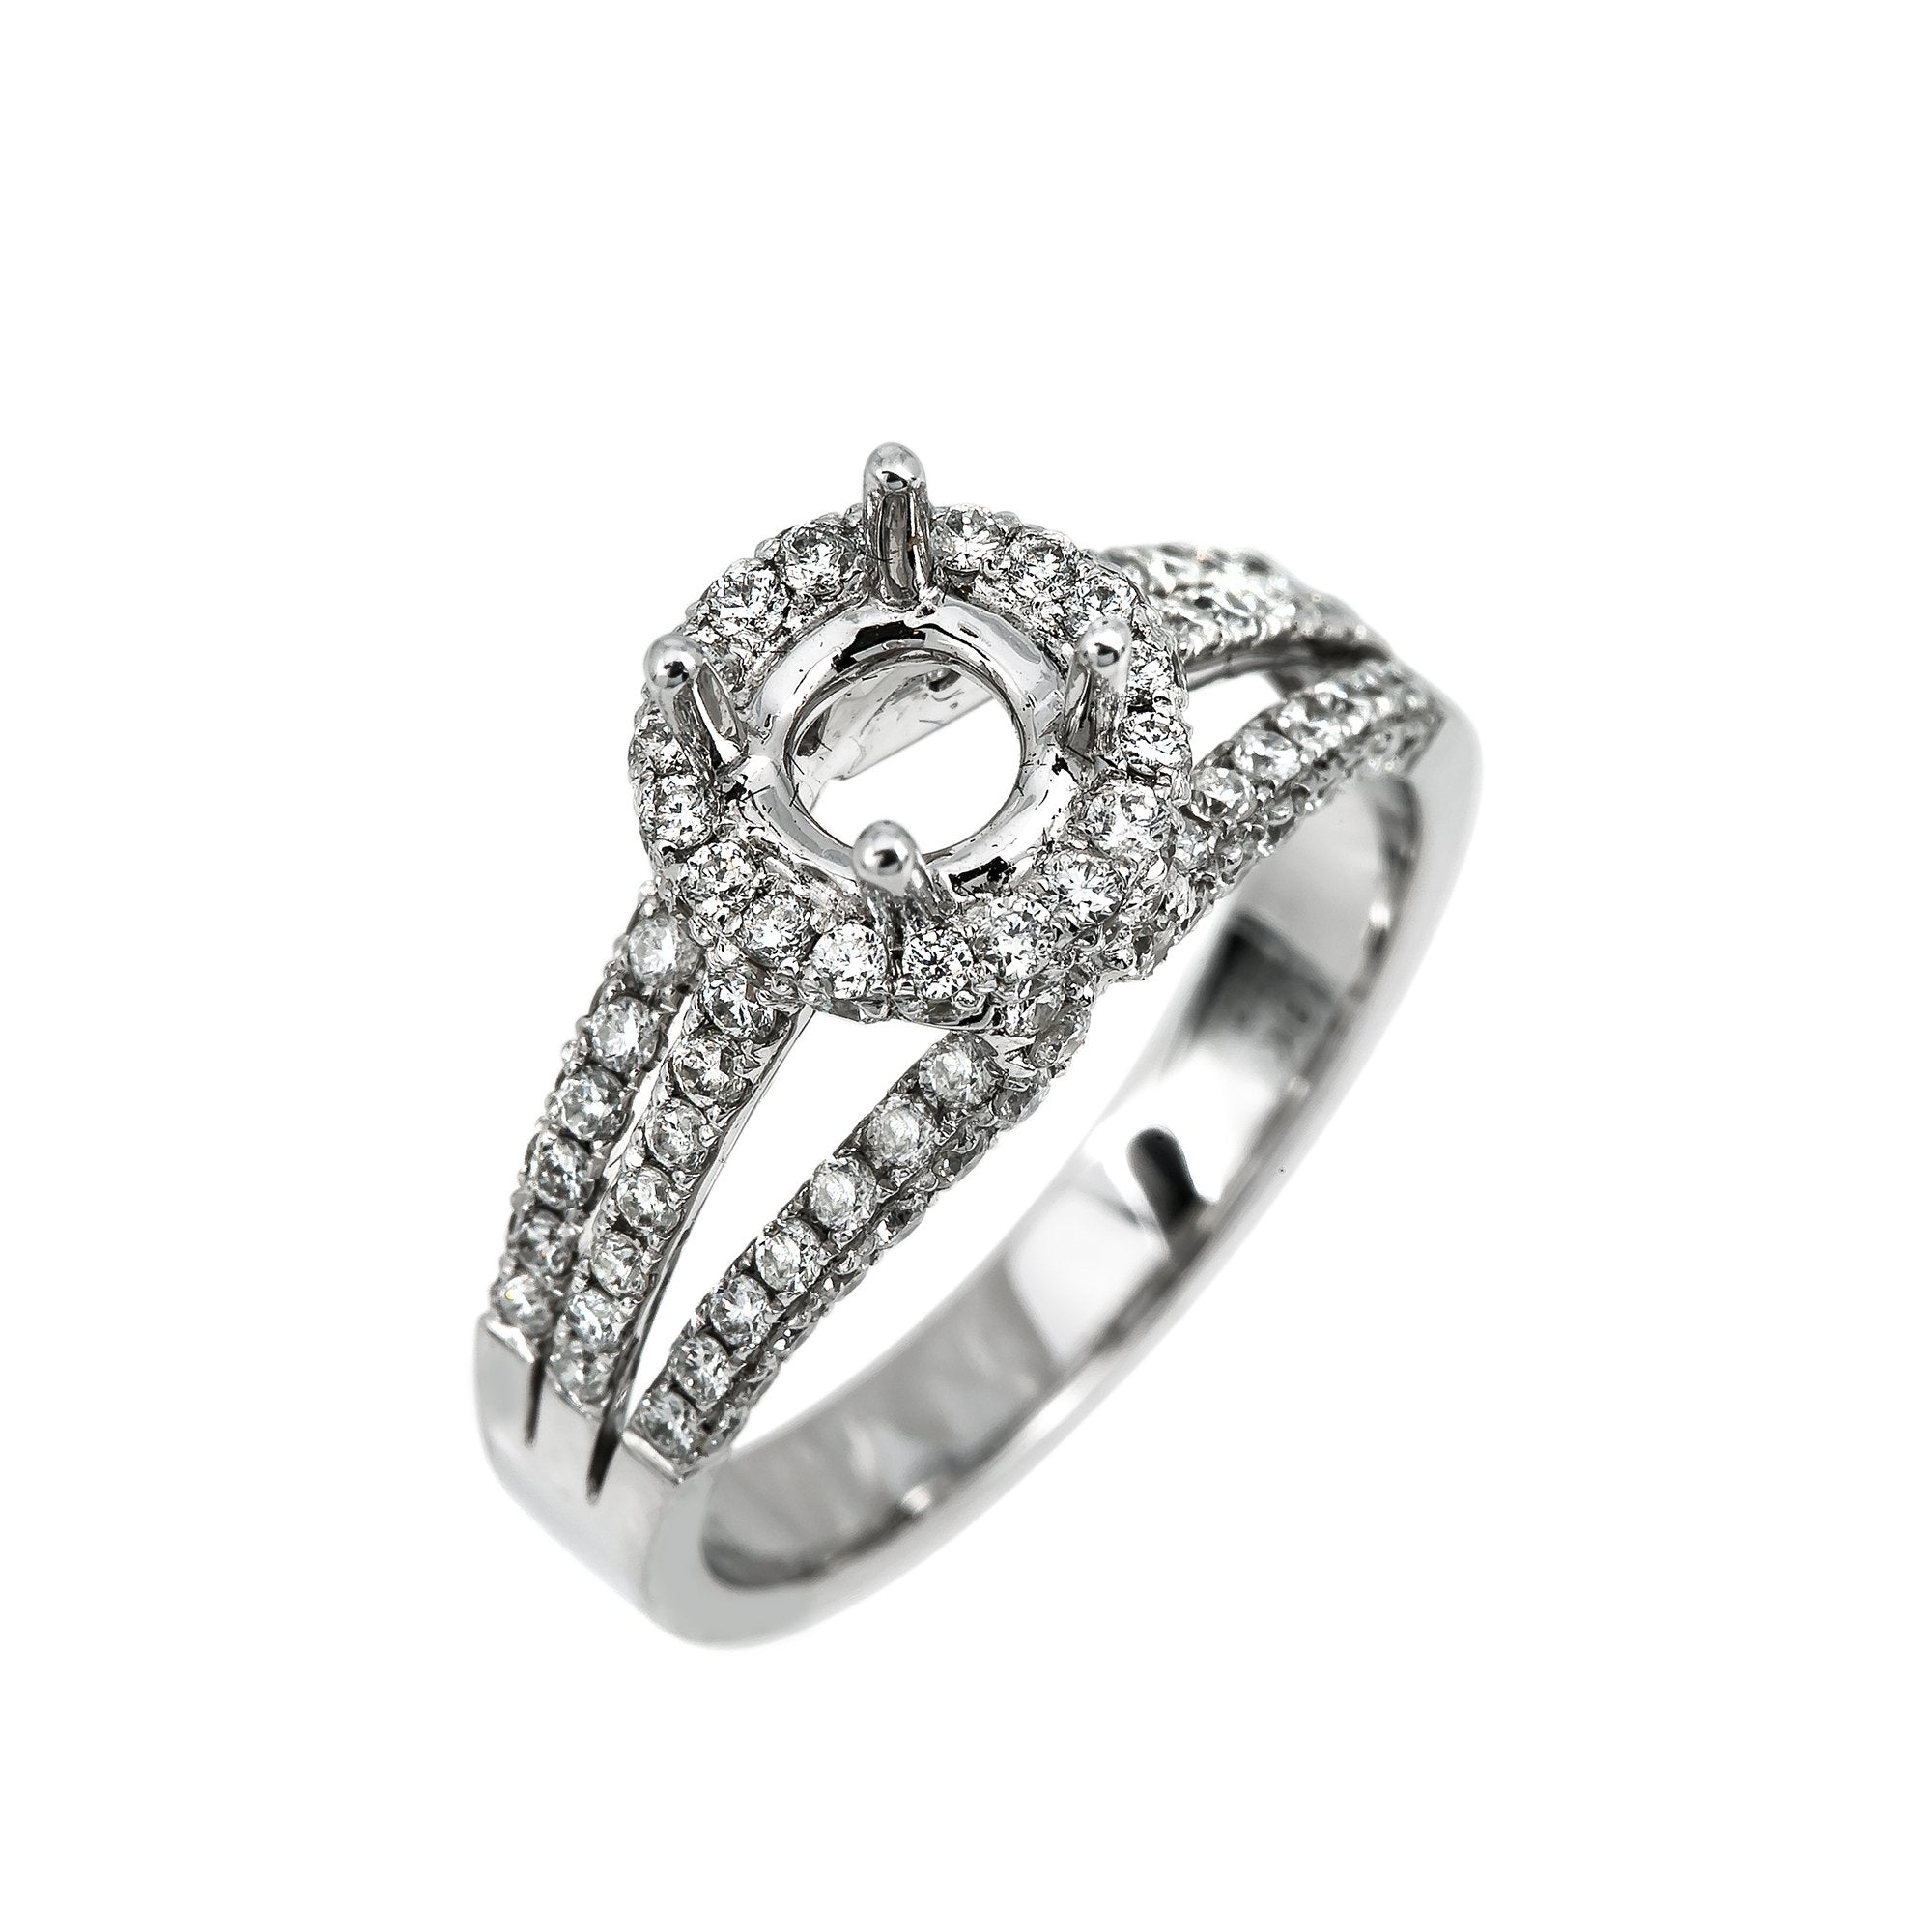 18K White Gold Women's Ring With 1.19 CT Diamonds